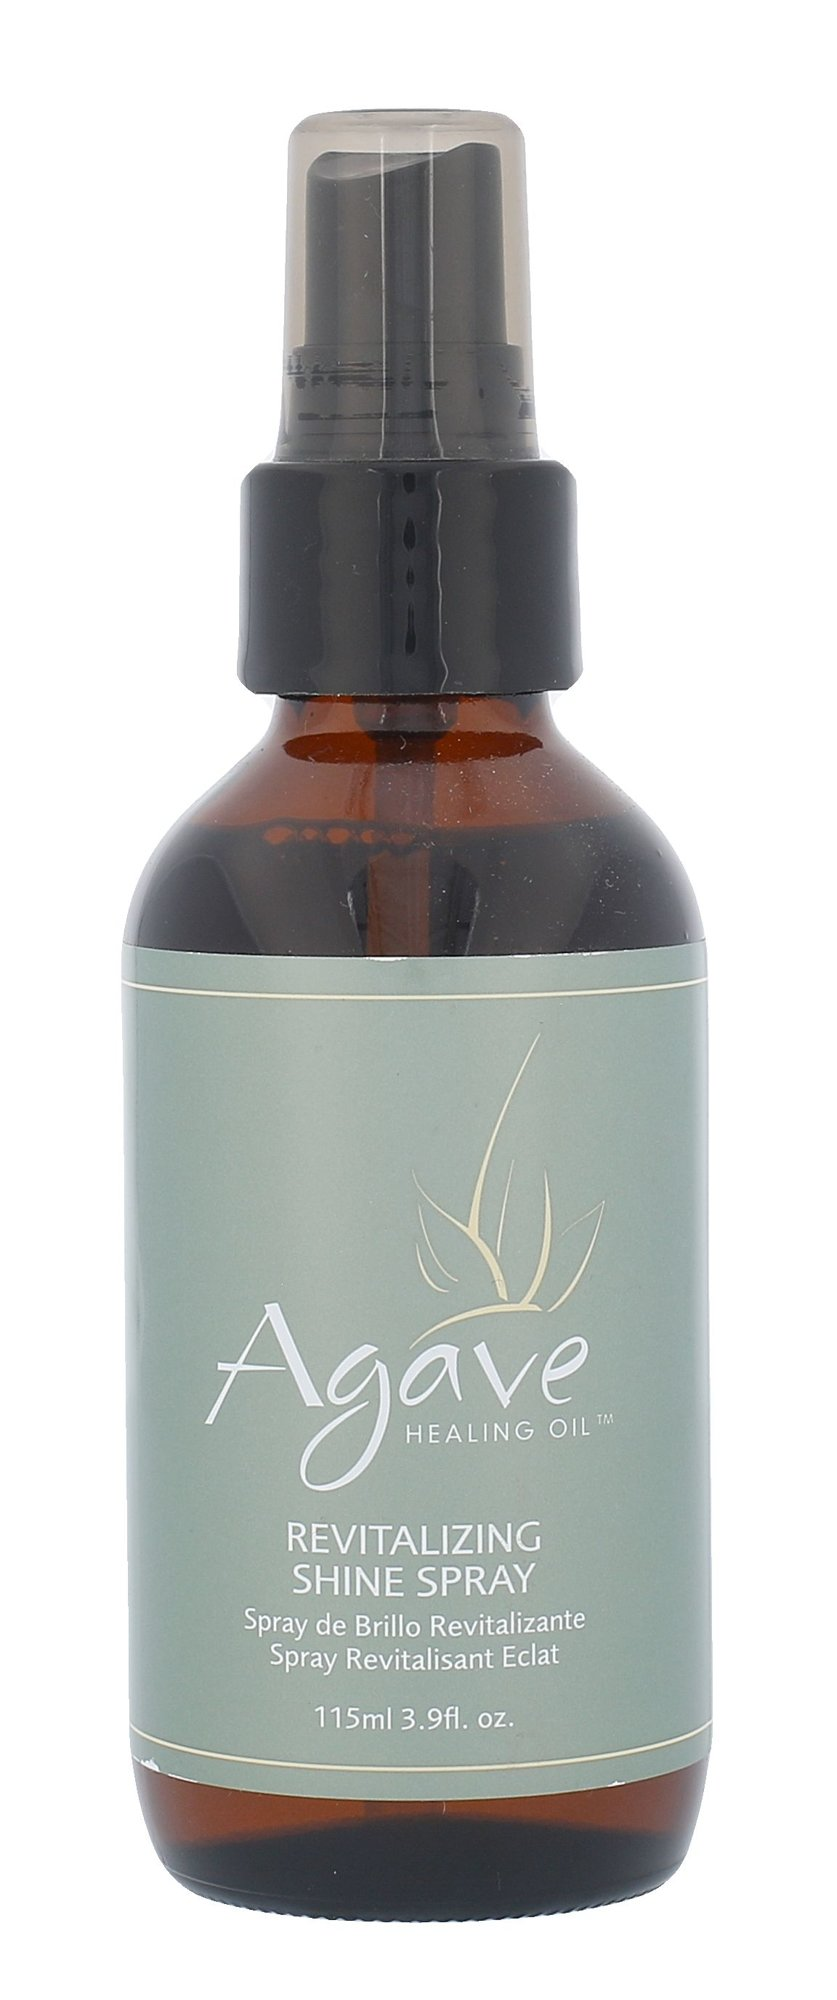 Bio Ionic Agave Cosmetic 115ml  Revitalizing Shine Spray